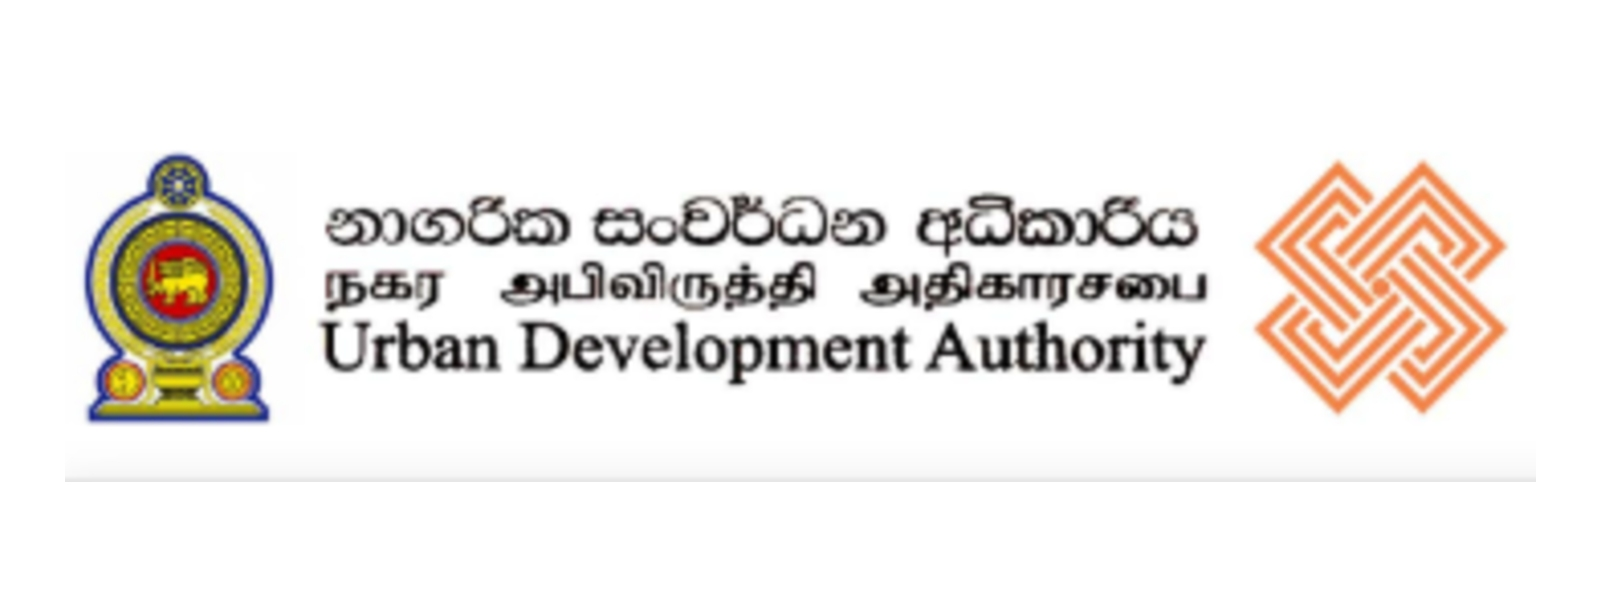 UDA abandons project to take over DS property in Colombo